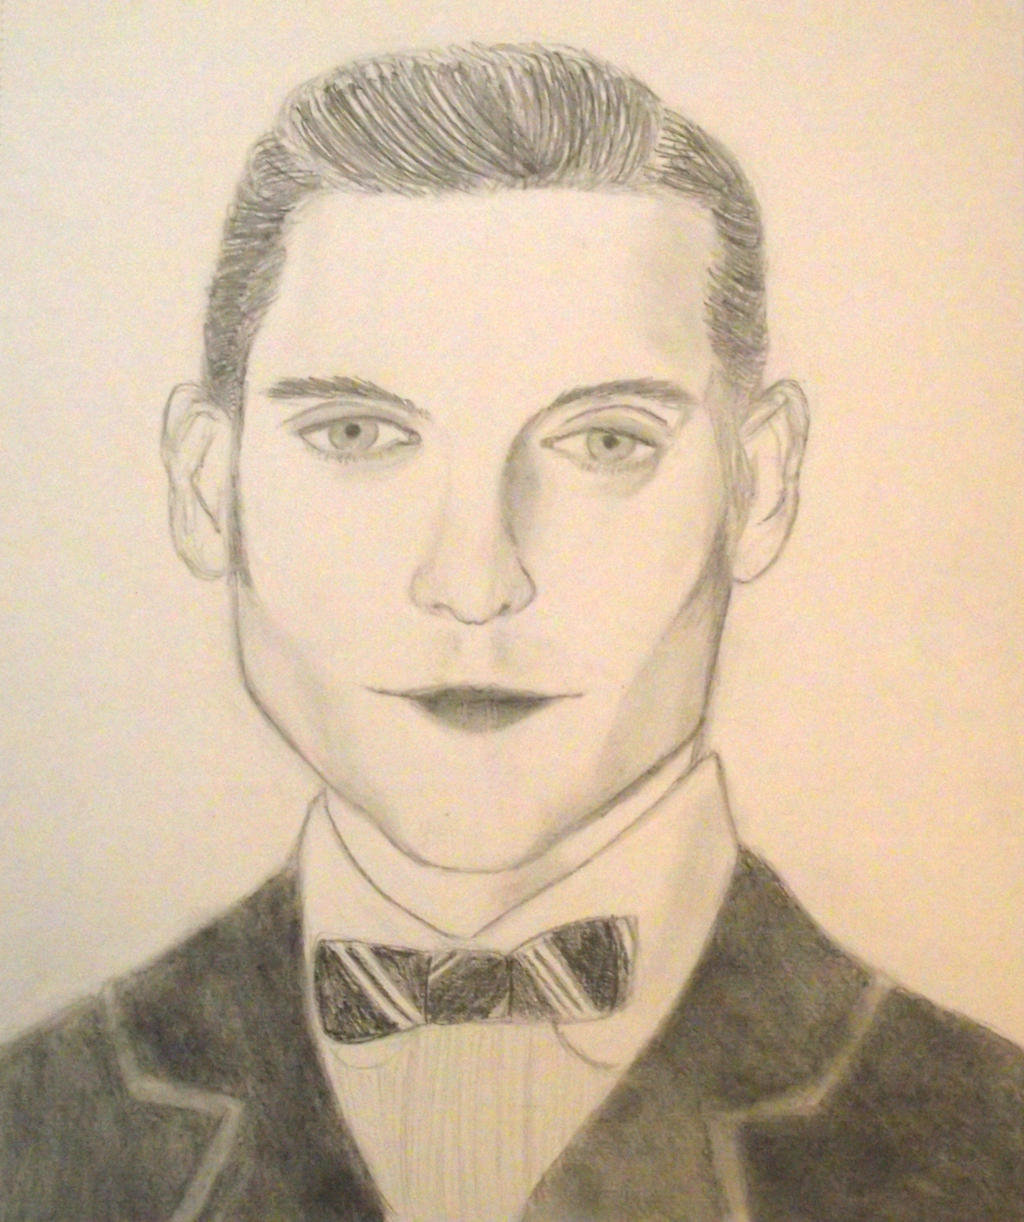 the great gatsbys story in the views of nick carraway By: victoria mullen set in a world of privilege, prohibition, decadence, wealth, colliding social worlds, and the incompatible contradictions, the great gatsby.